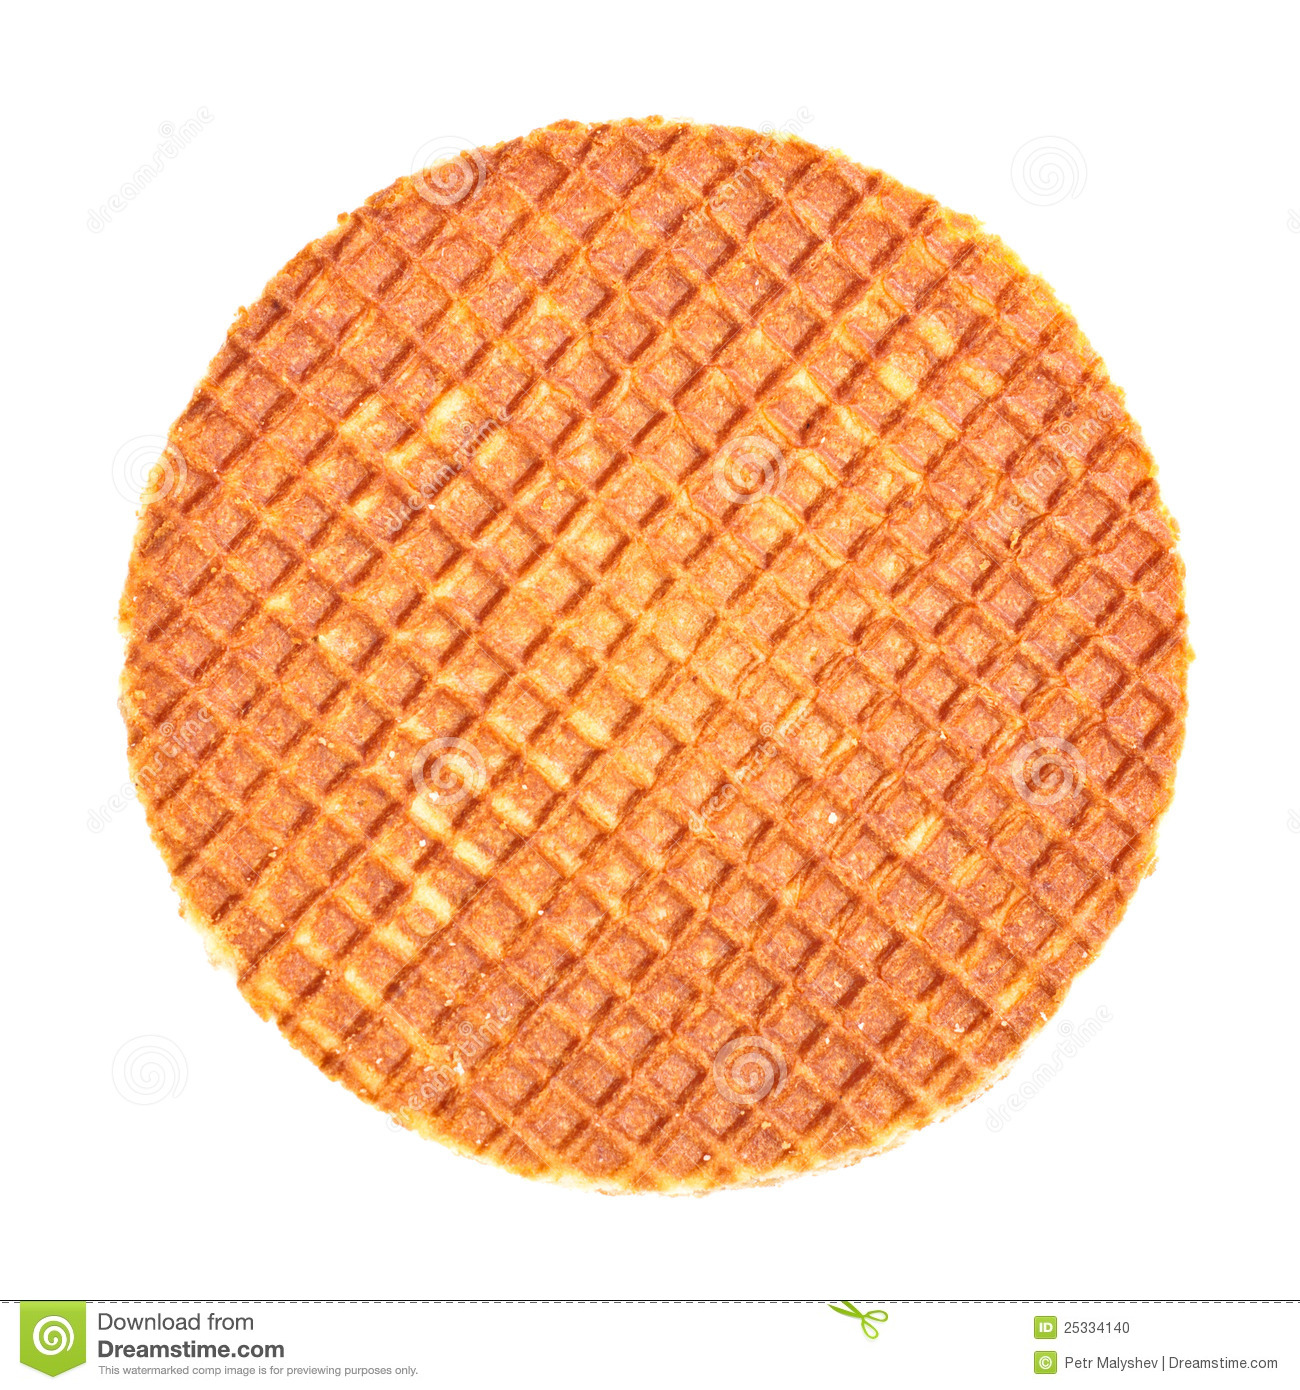 1 854 Dutch Waffle Photos Free Royalty Free Stock Photos From Dreamstime